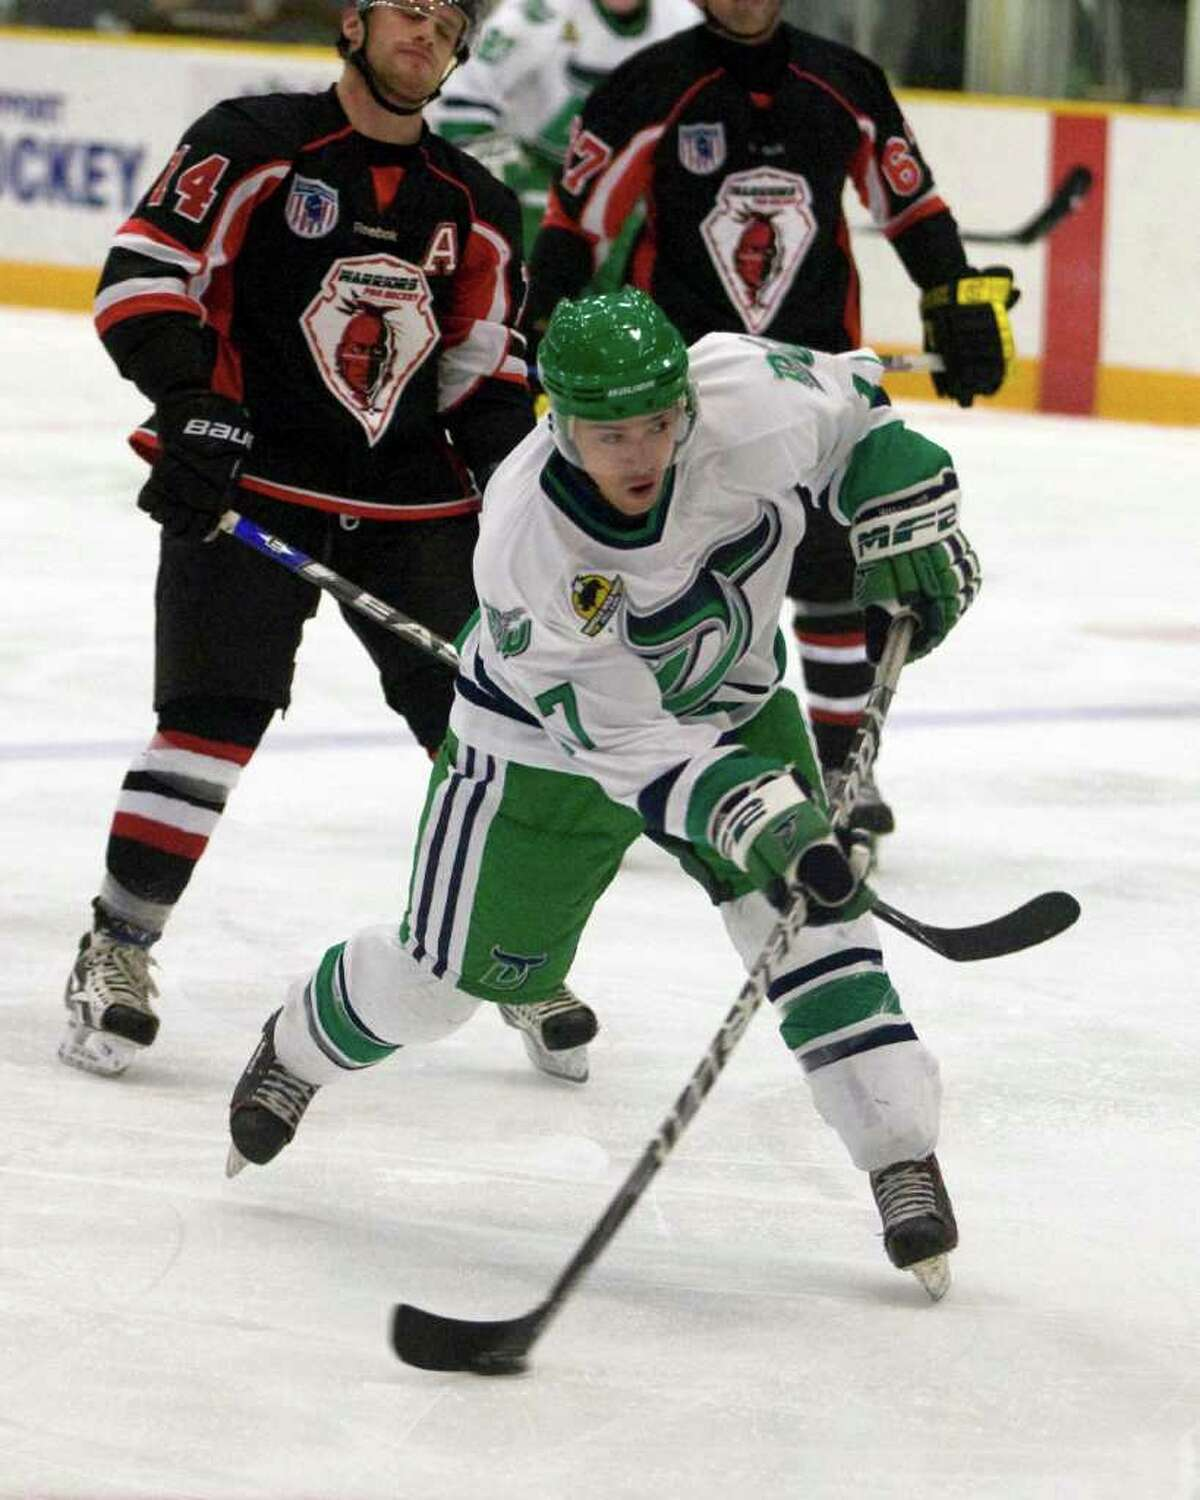 The Whalers' Alec Kirschner fires a shot against the Akwesasne Warriors Friday night at the Danbury Arena.